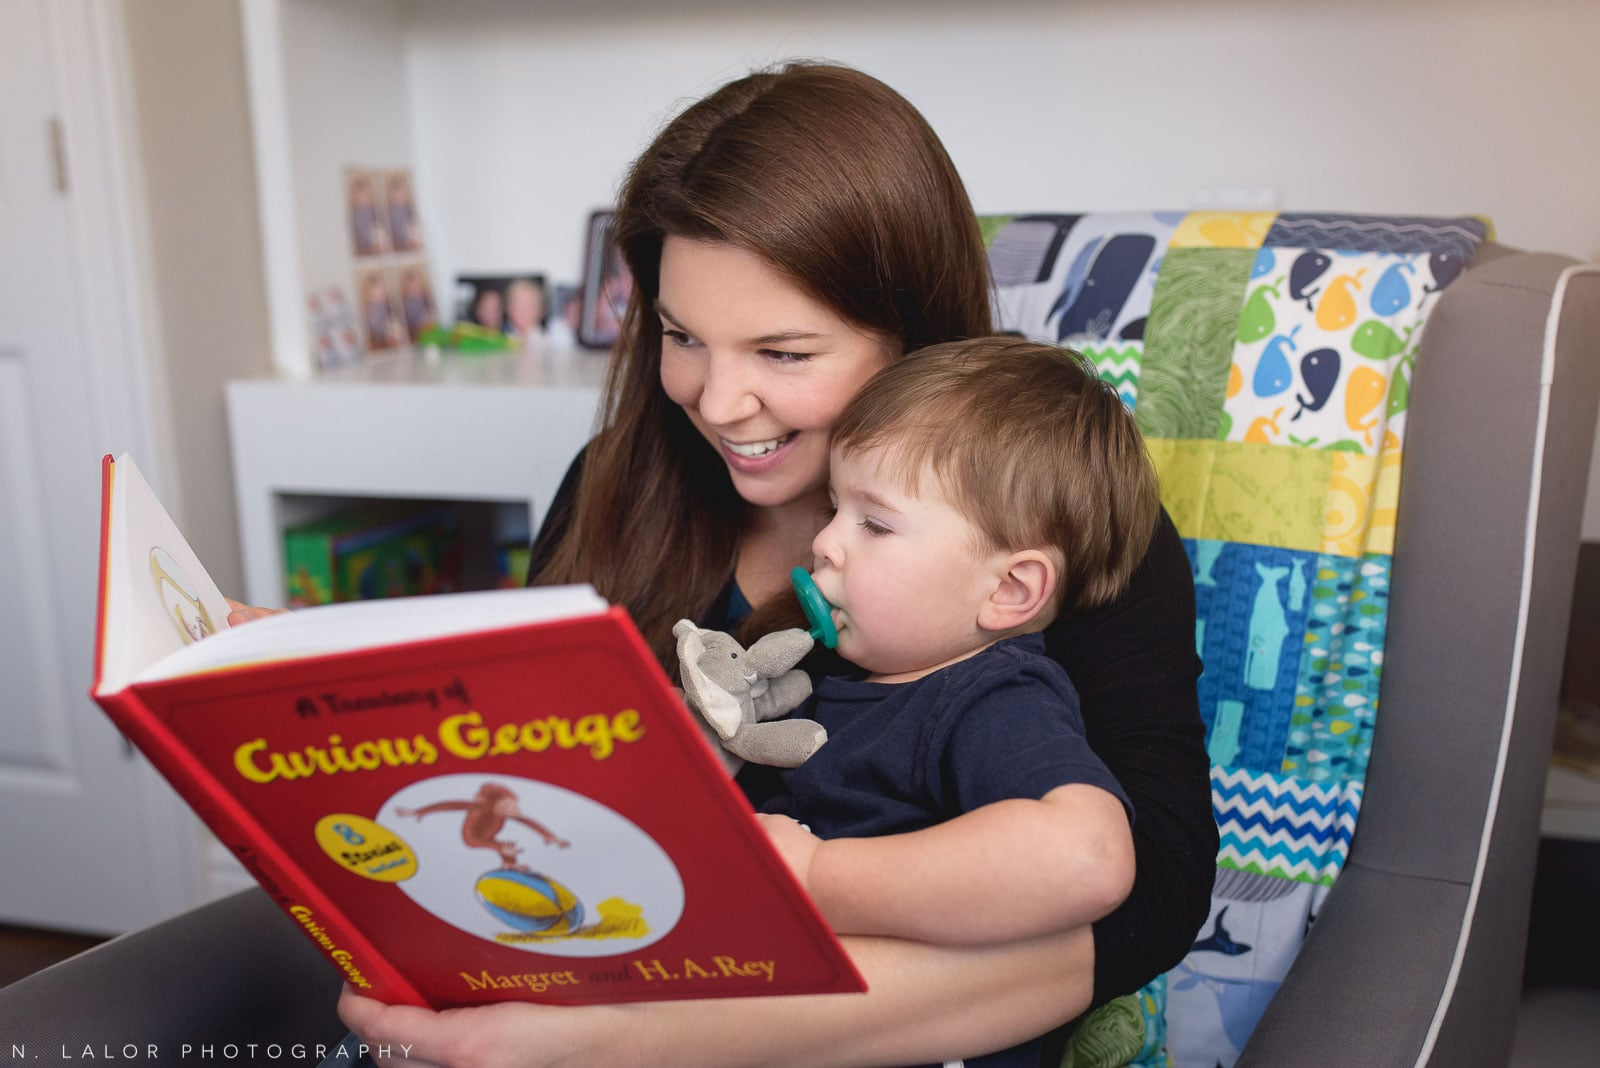 Smiling Mom reading a Curious George book to her toddler son. Lifestyle portrait by N. Lalor Photography. Connecticut.